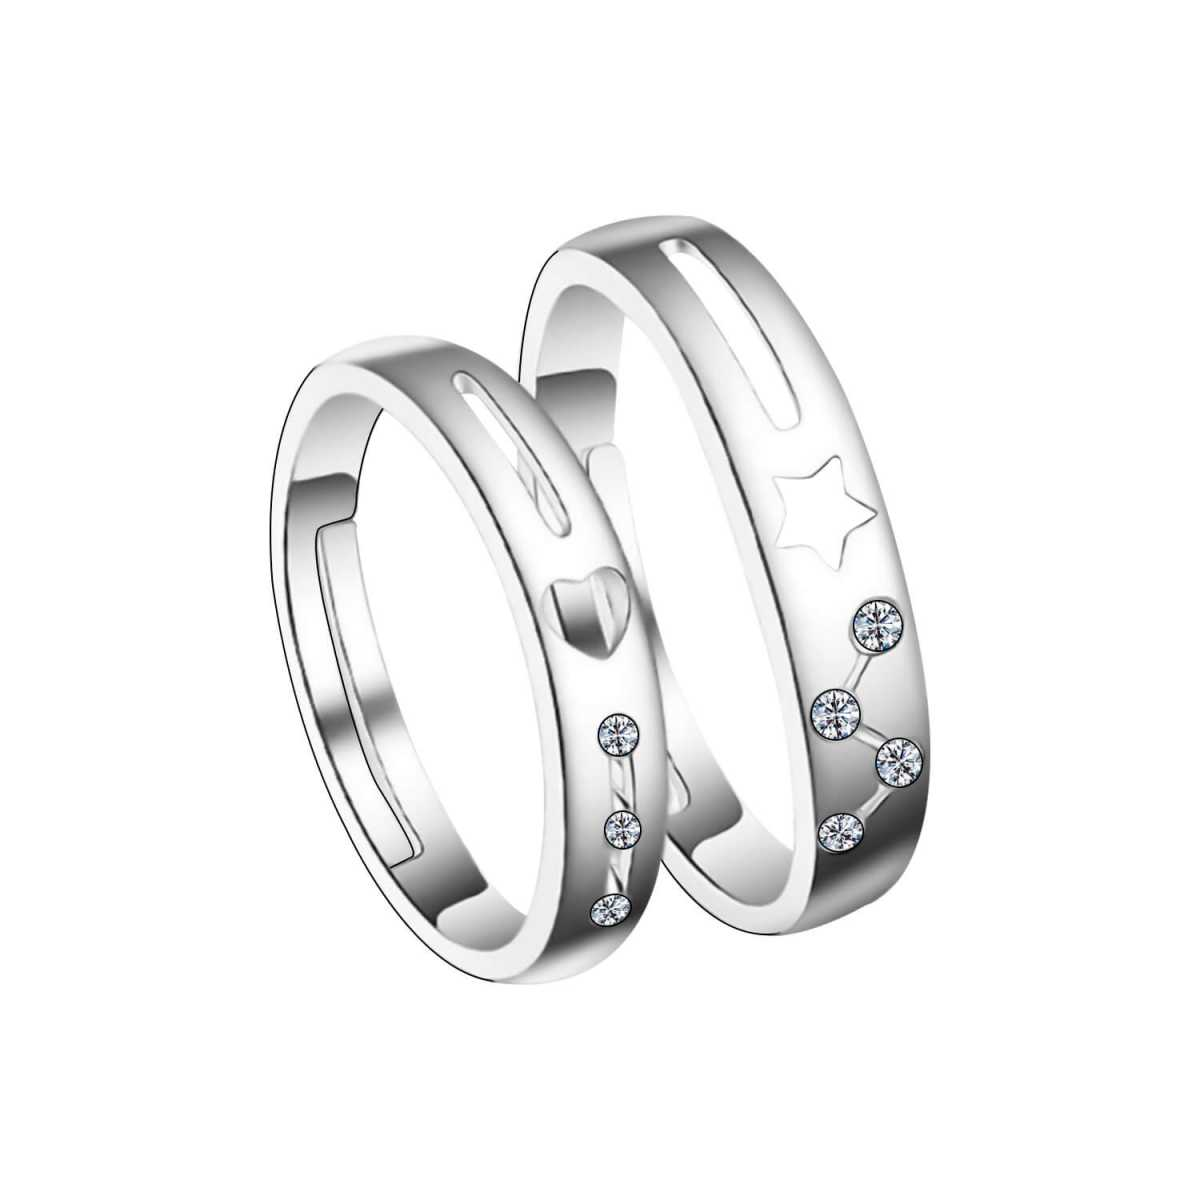 SILVERSHINE,silver plated attractive zig zeg diamond designer adjustable couple ring for men and women.